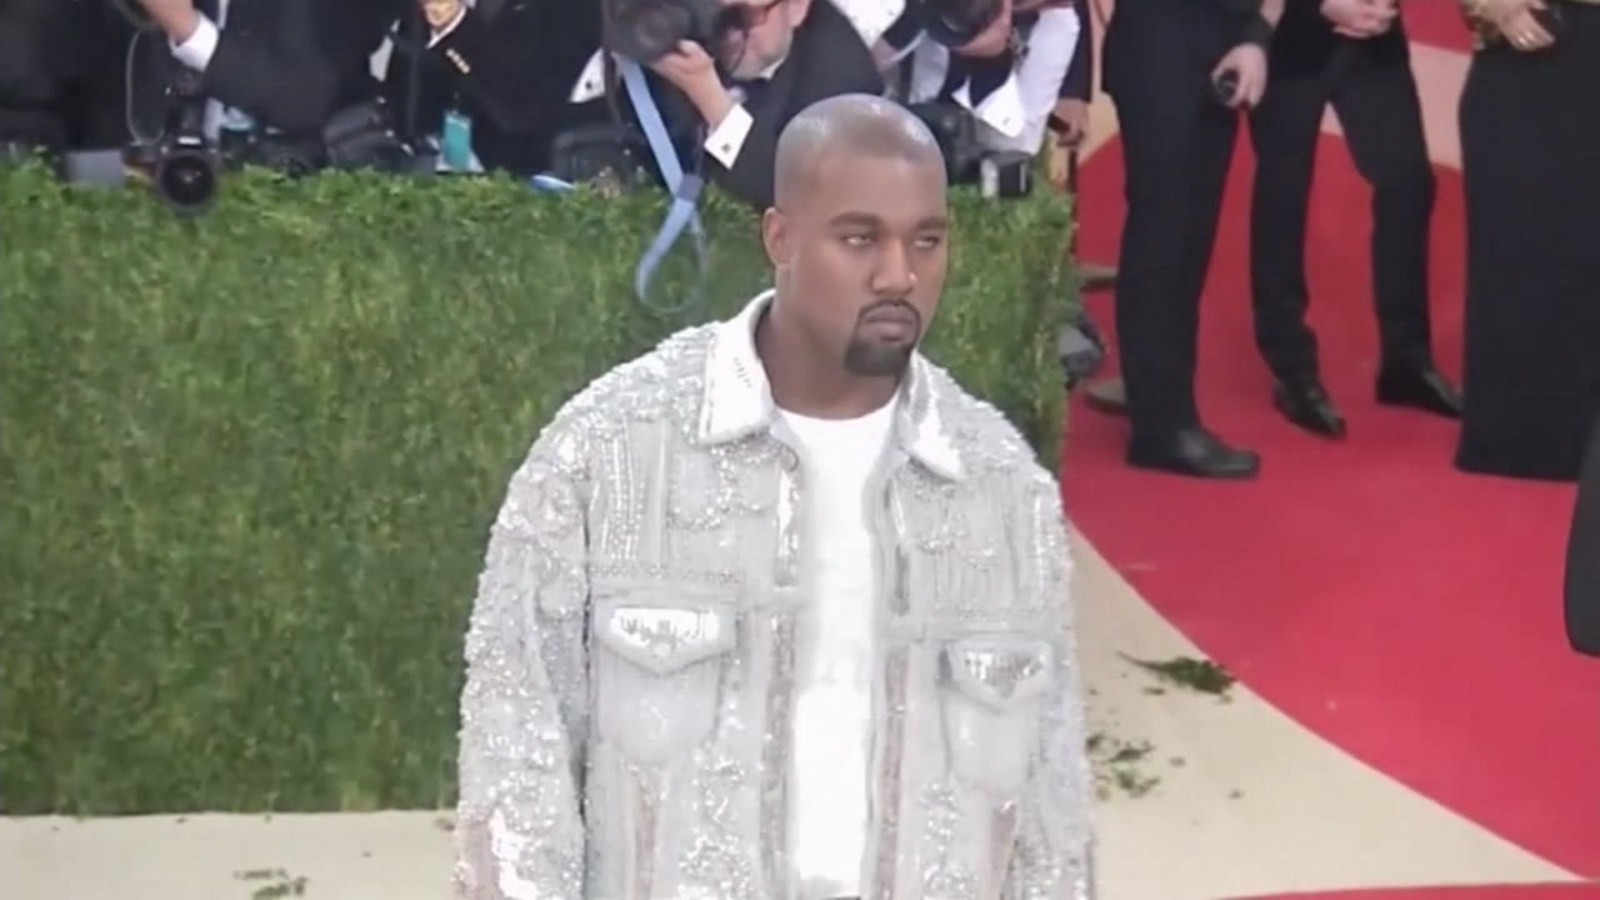 Kanye West reportedly met with potential investors in SF to discuss Star Wars-themed prefab homes